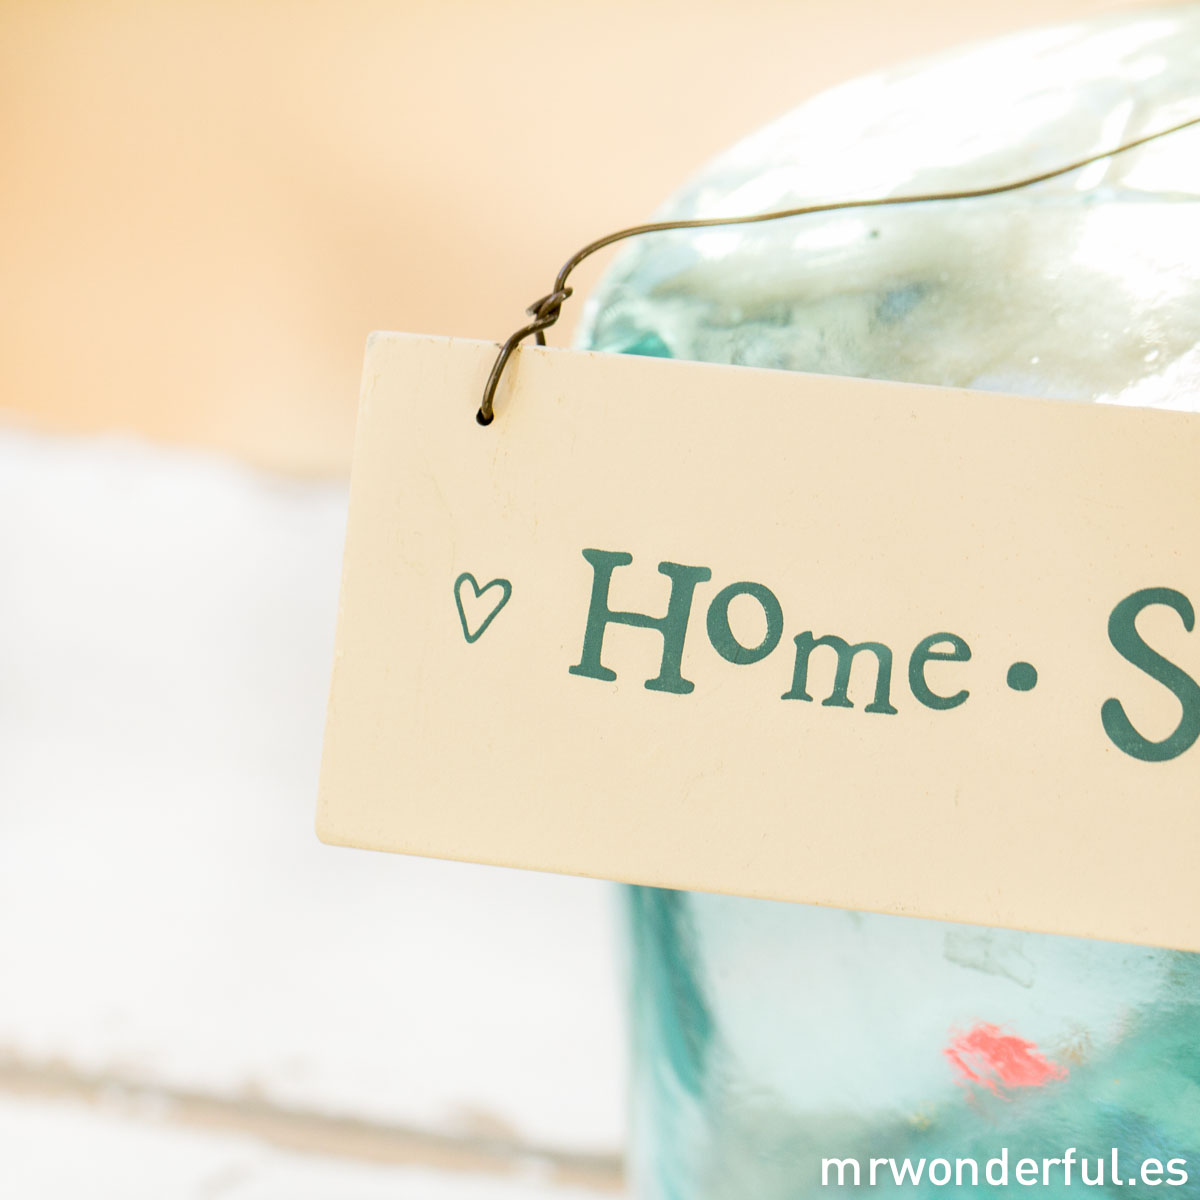 mrwonderful_874_cartel-madera_home-sweet-5